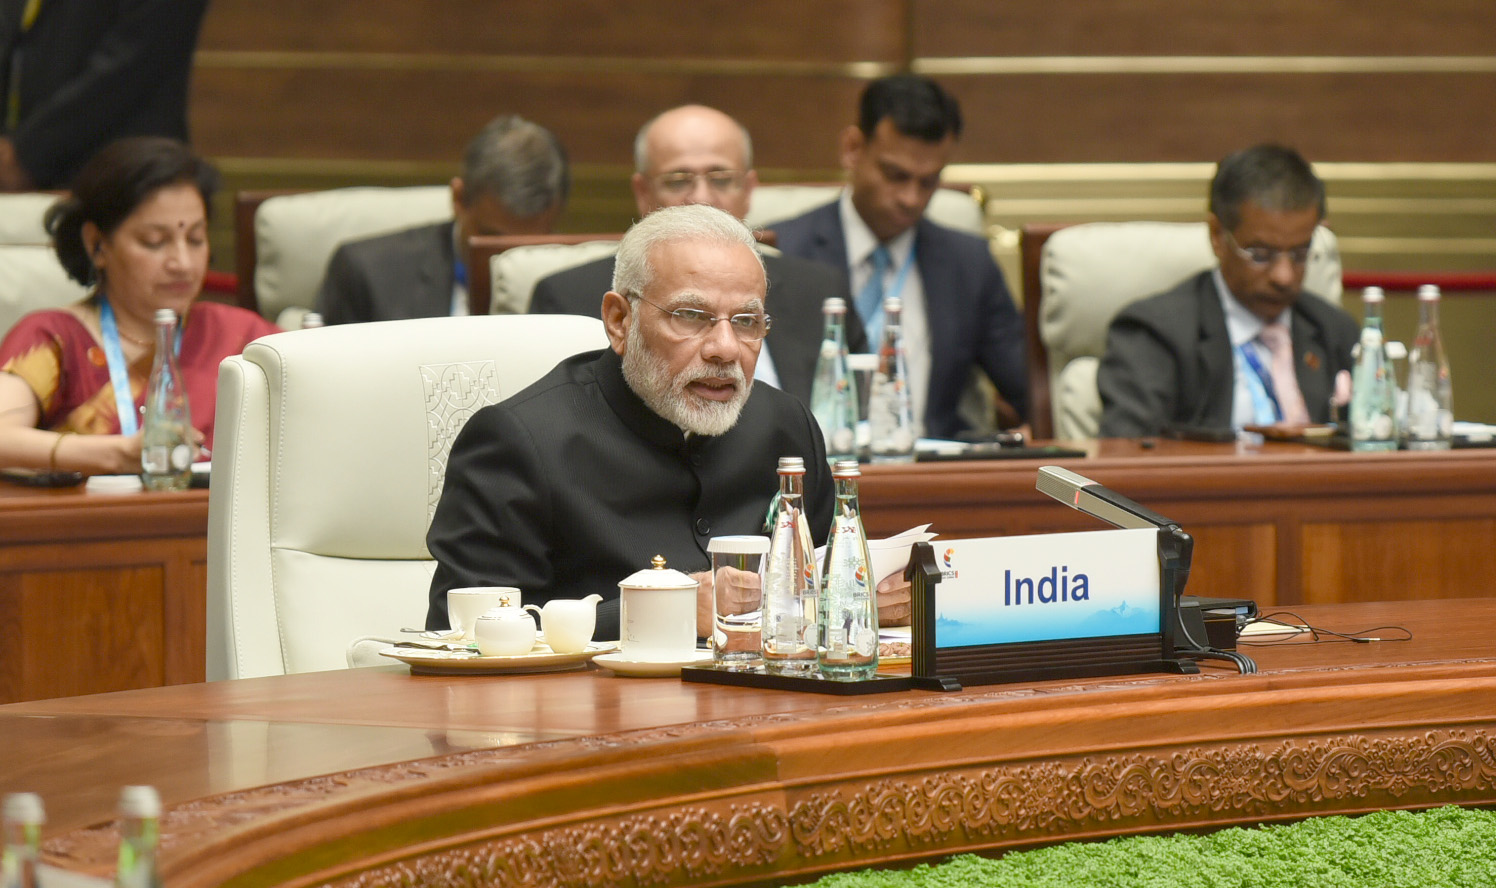 Prime Minister Narendra Modi delivering his statement, at the Plenary Session of the 9th BRICS Summit, in Xiamen, China